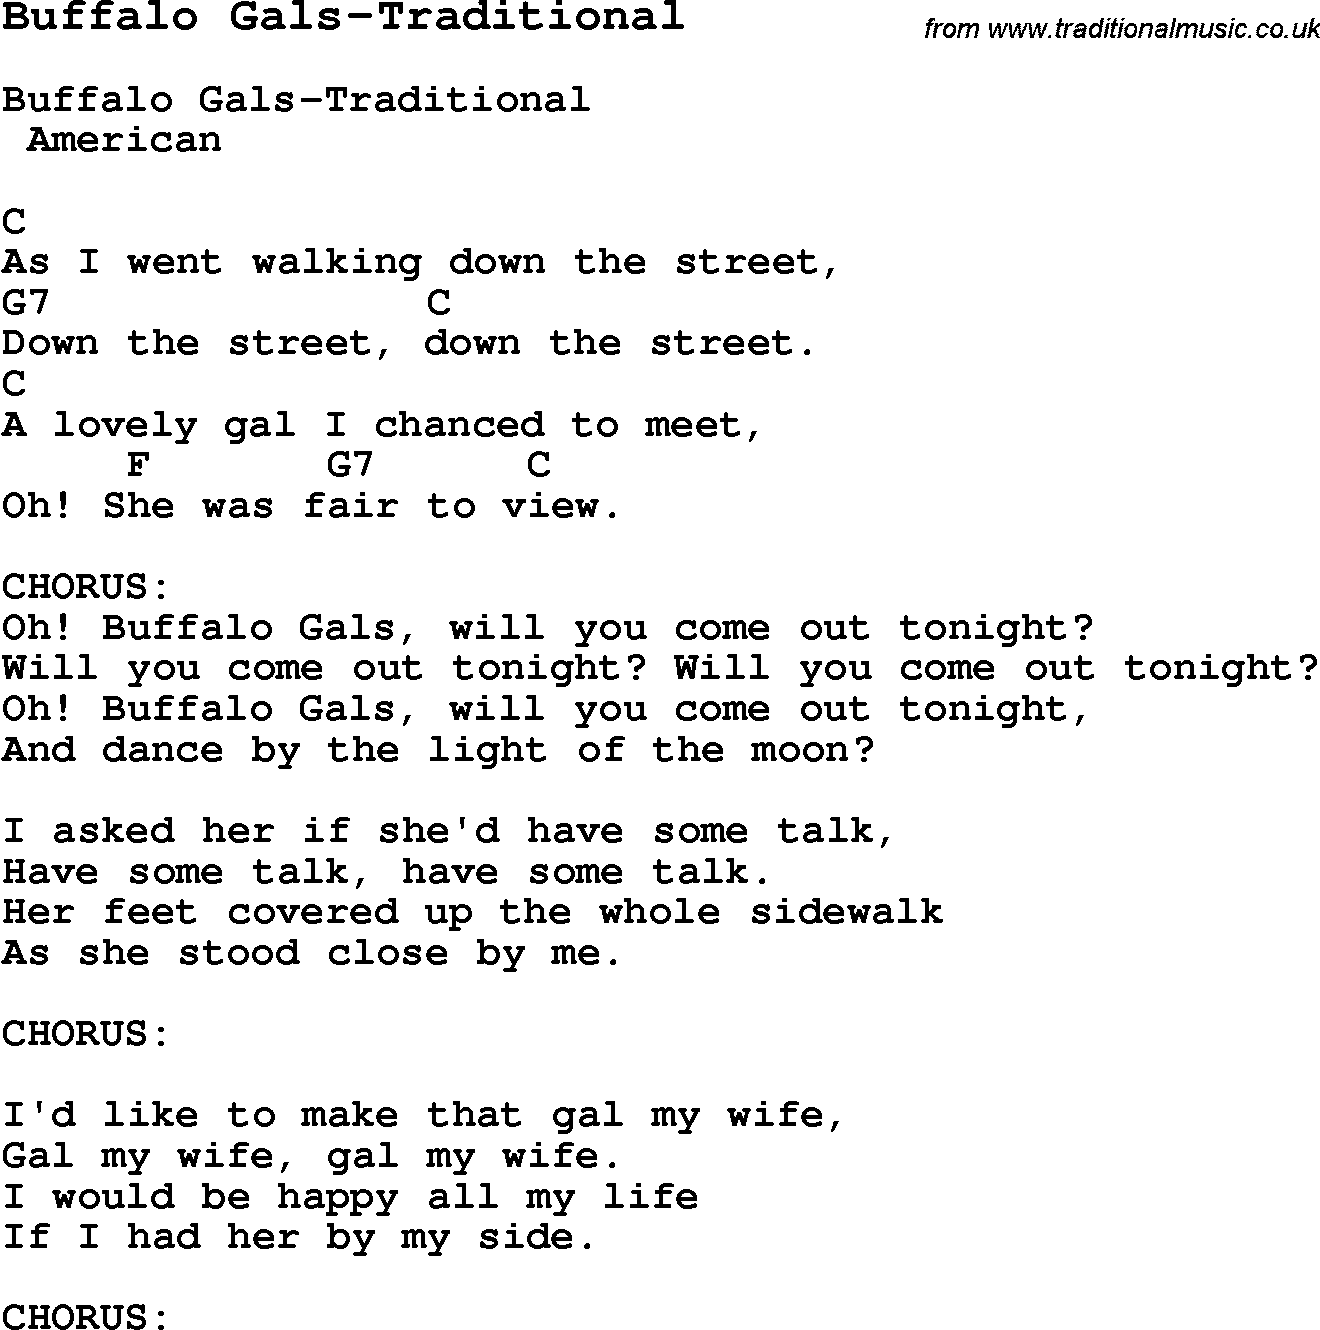 Summer camp song buffalo gals traditional with lyrics and chords summer camp song buffalo gals traditional with lyrics and chords for ukulele hexwebz Image collections